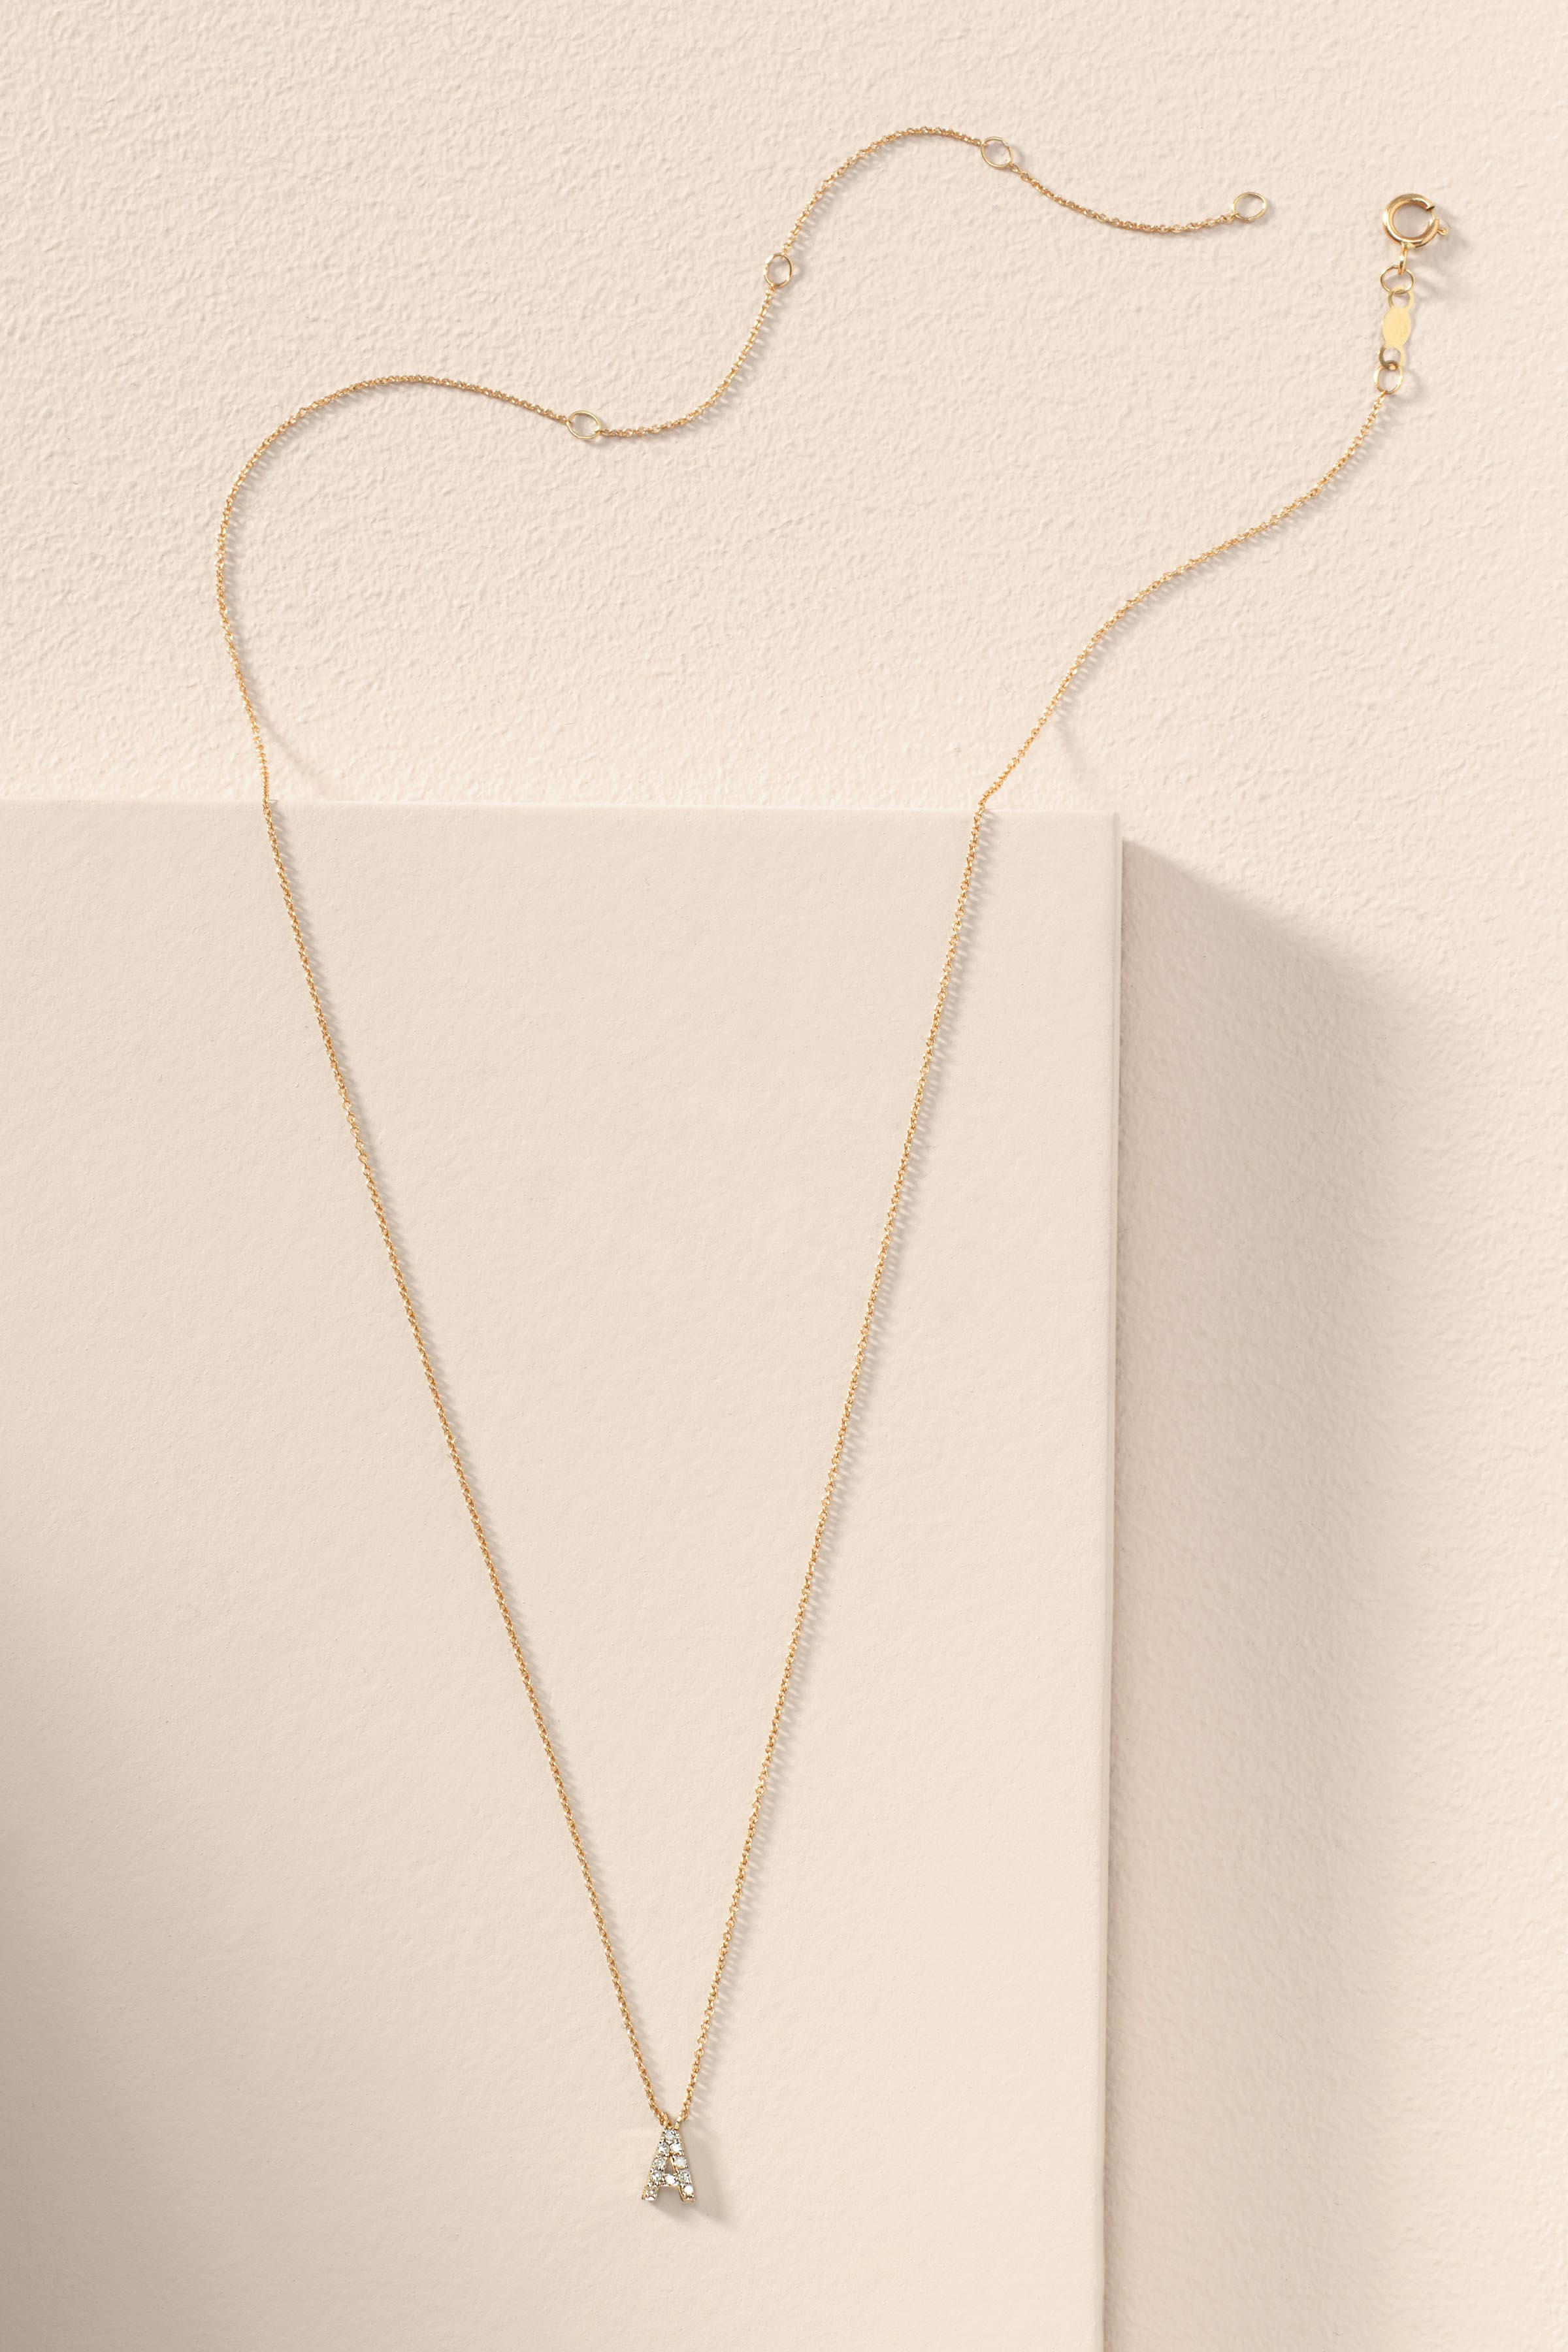 Real Simple Style Audrey Necklace